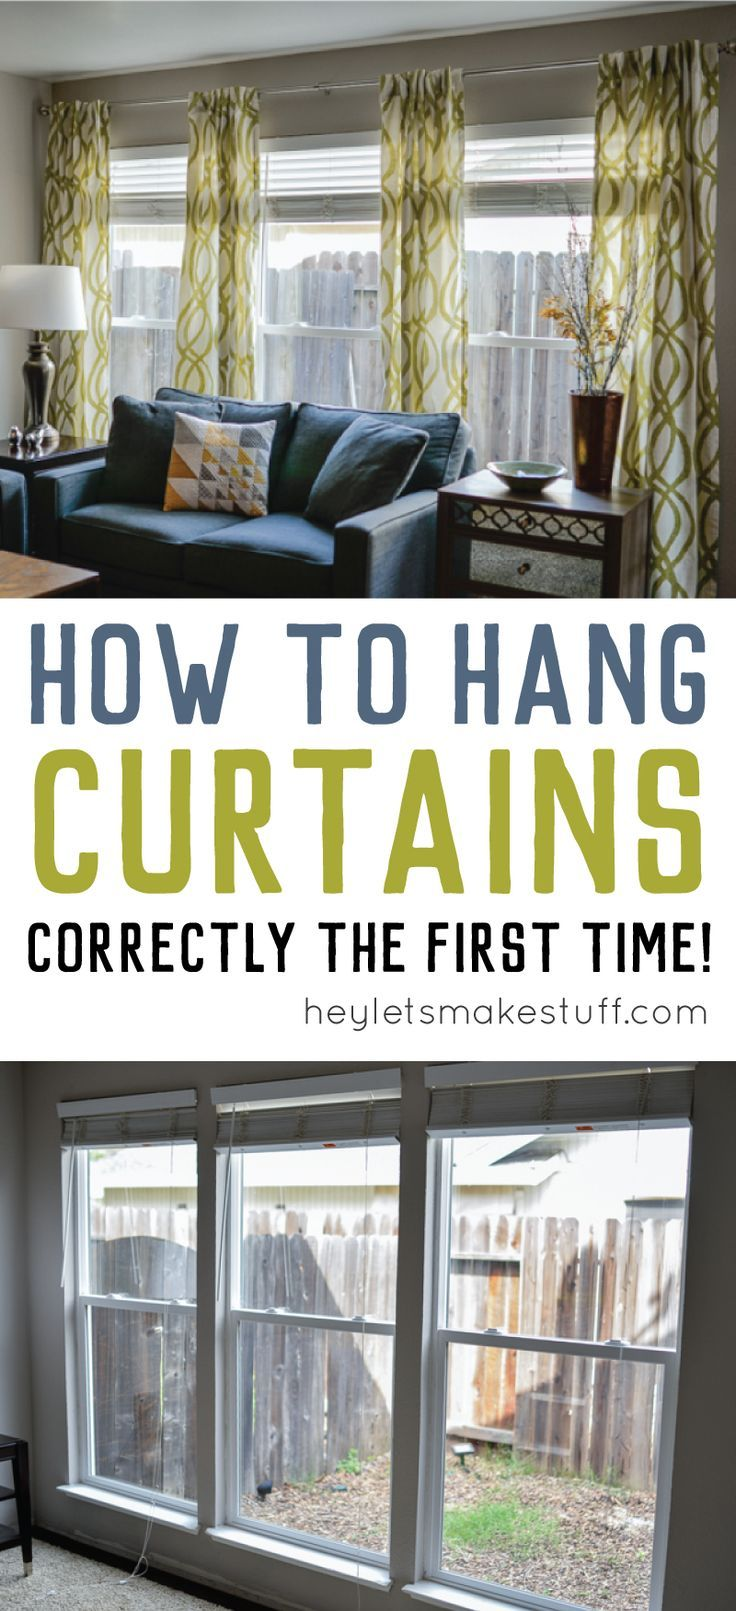 Chairs that Hang from Ceiling: A Way to Have Fun with Something Little over the Top